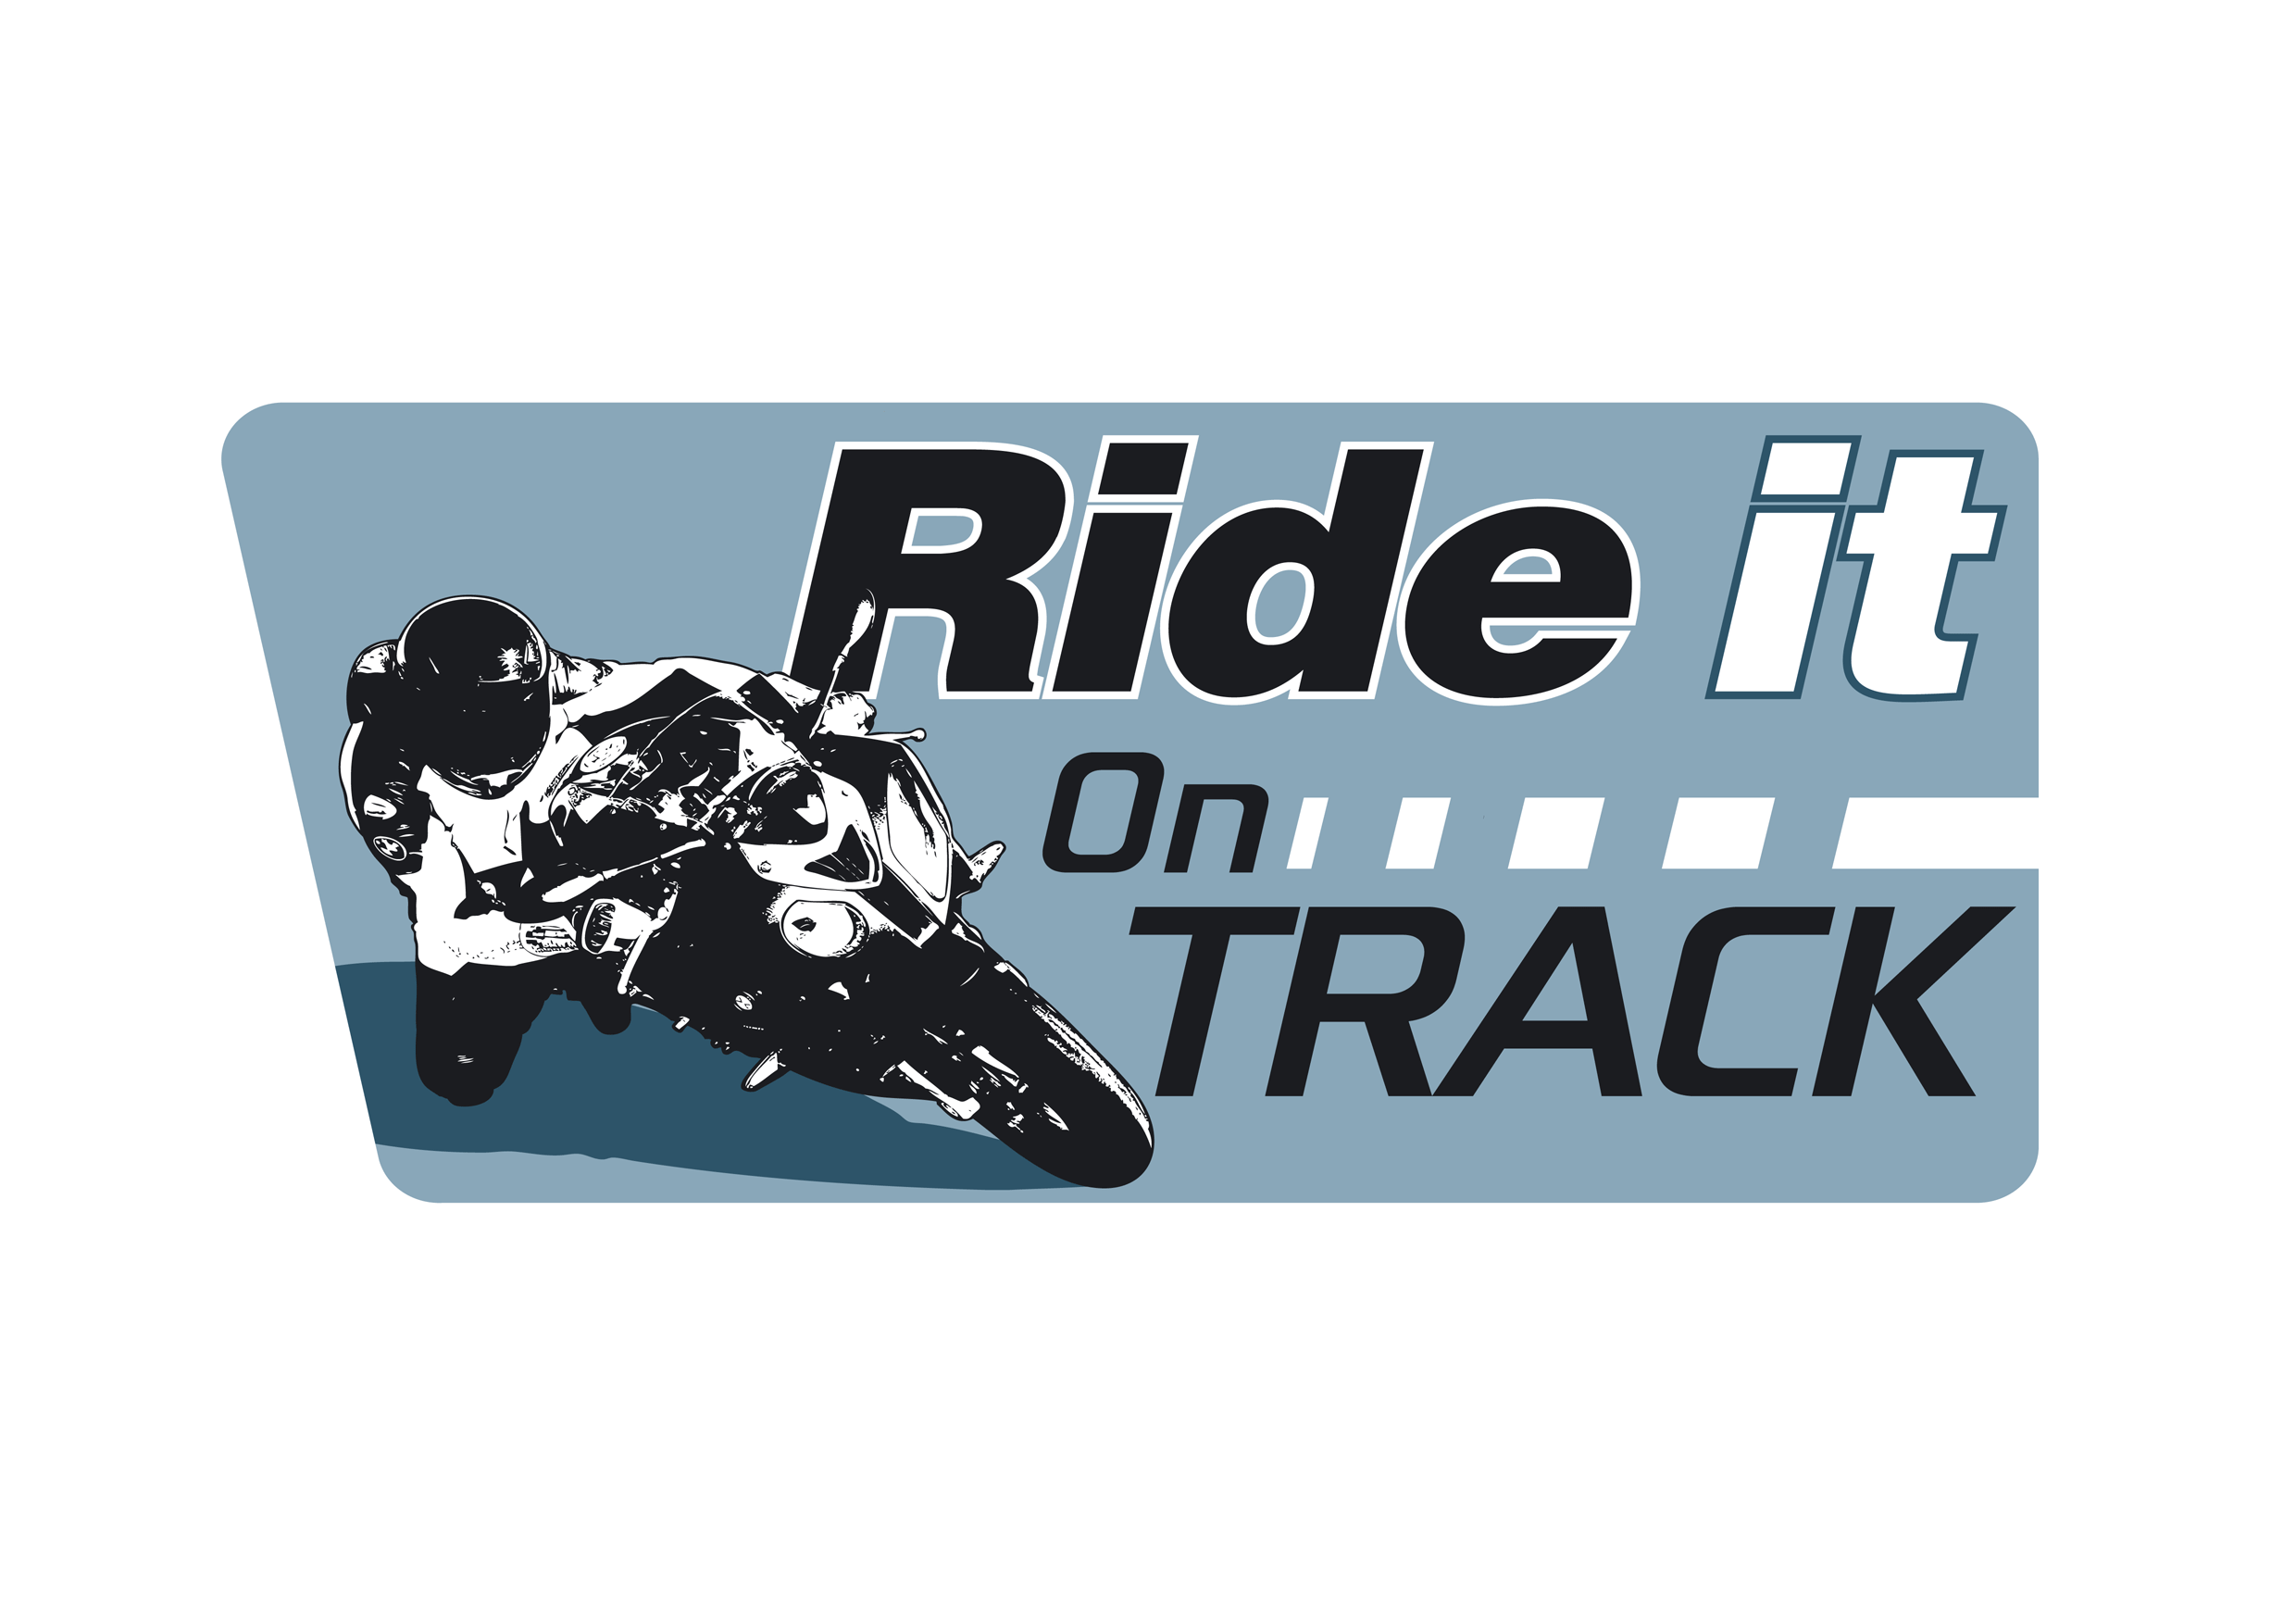 RIDE IT ON TRACK